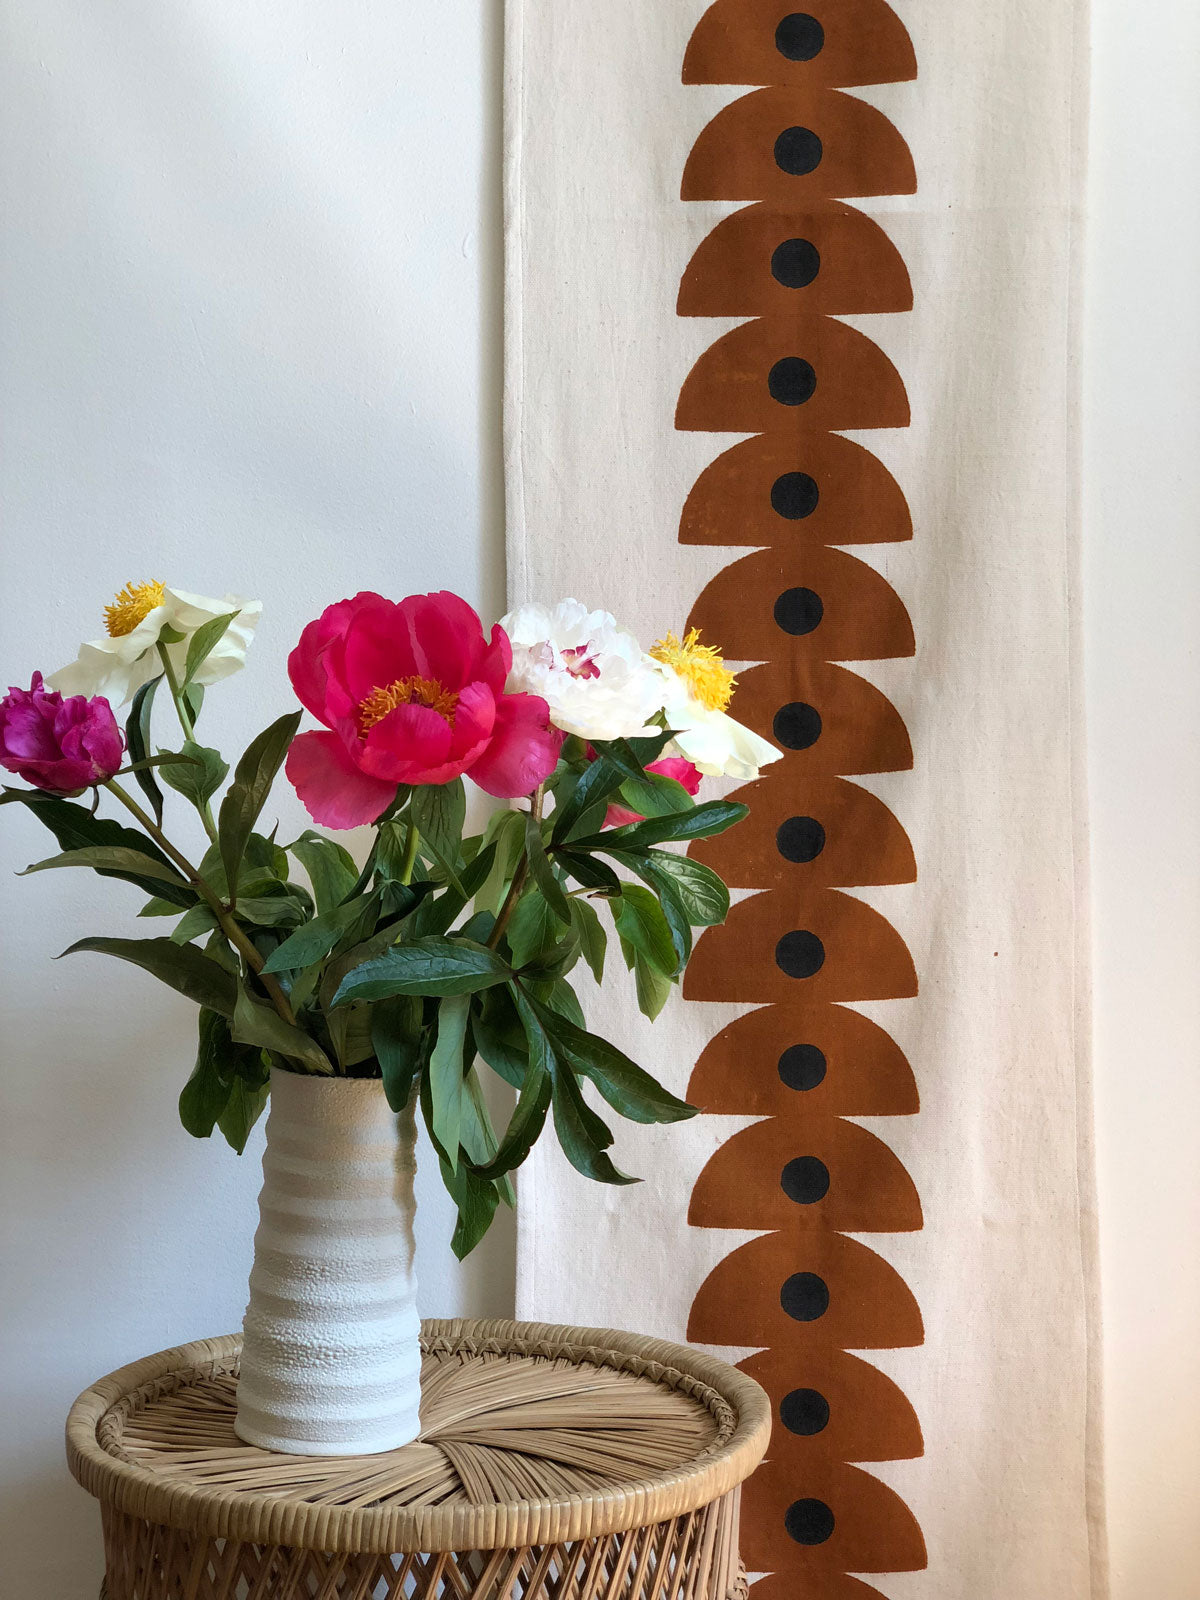 Our handwoven, hand block printed table runner doubles as a stunning wall hanging, sure to liven up any space. Handwoven and hand block printed in Gujarat, India. We work directly with the artisans to ensure our products are ethically made.